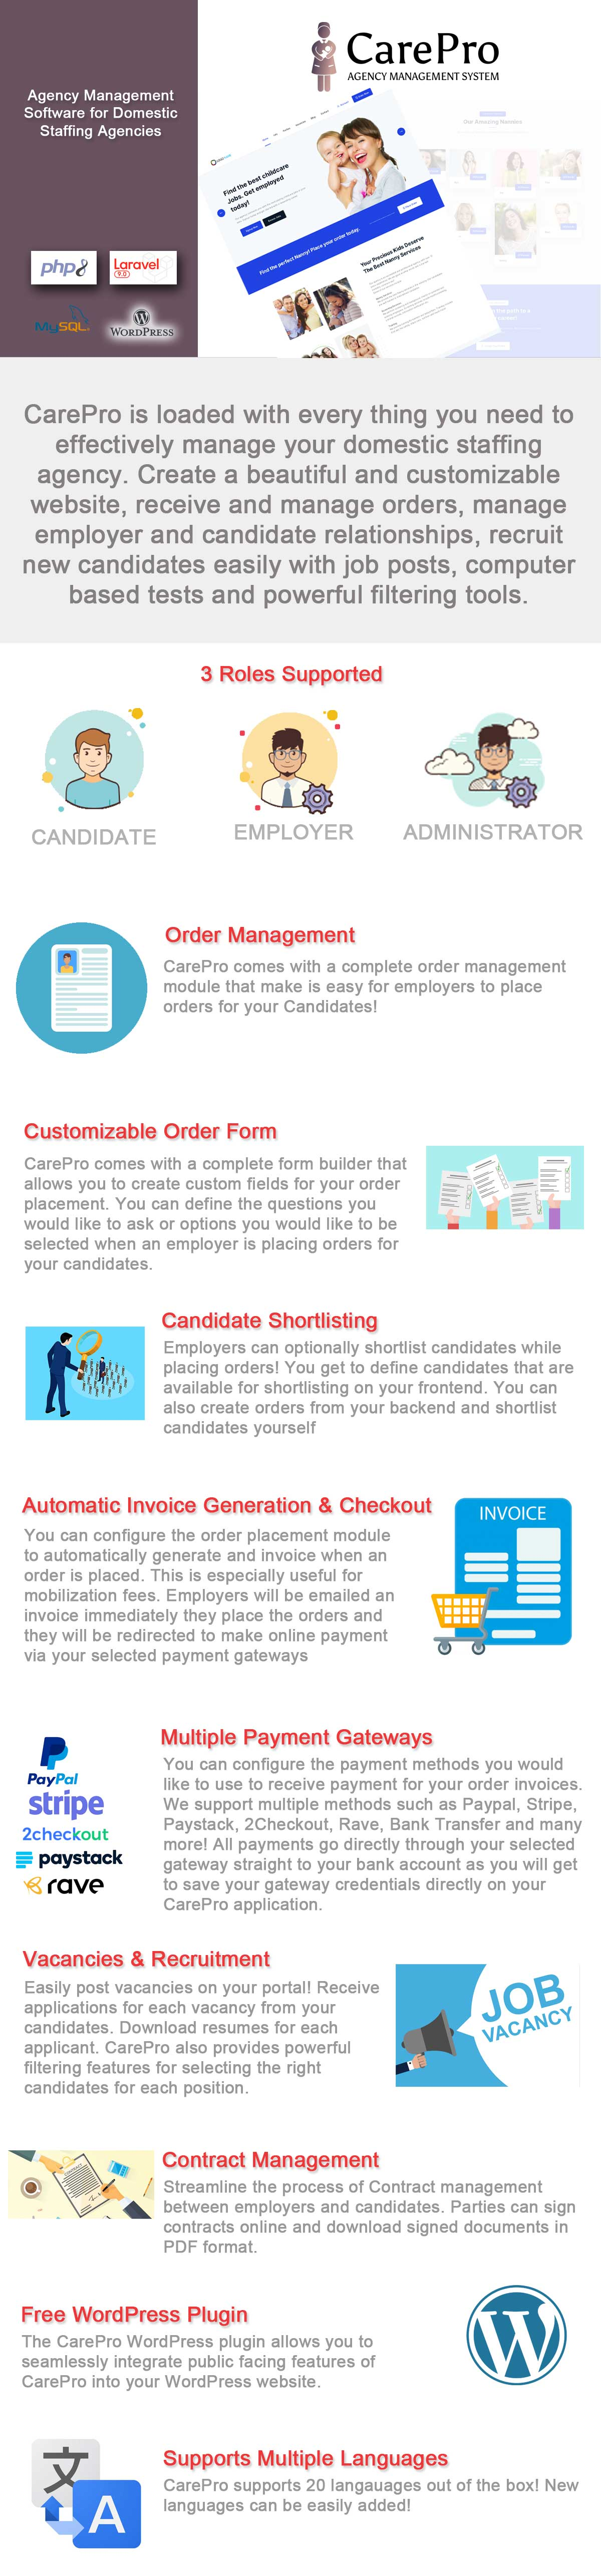 CarePro - Domestic Staffing Agency Management System - 1